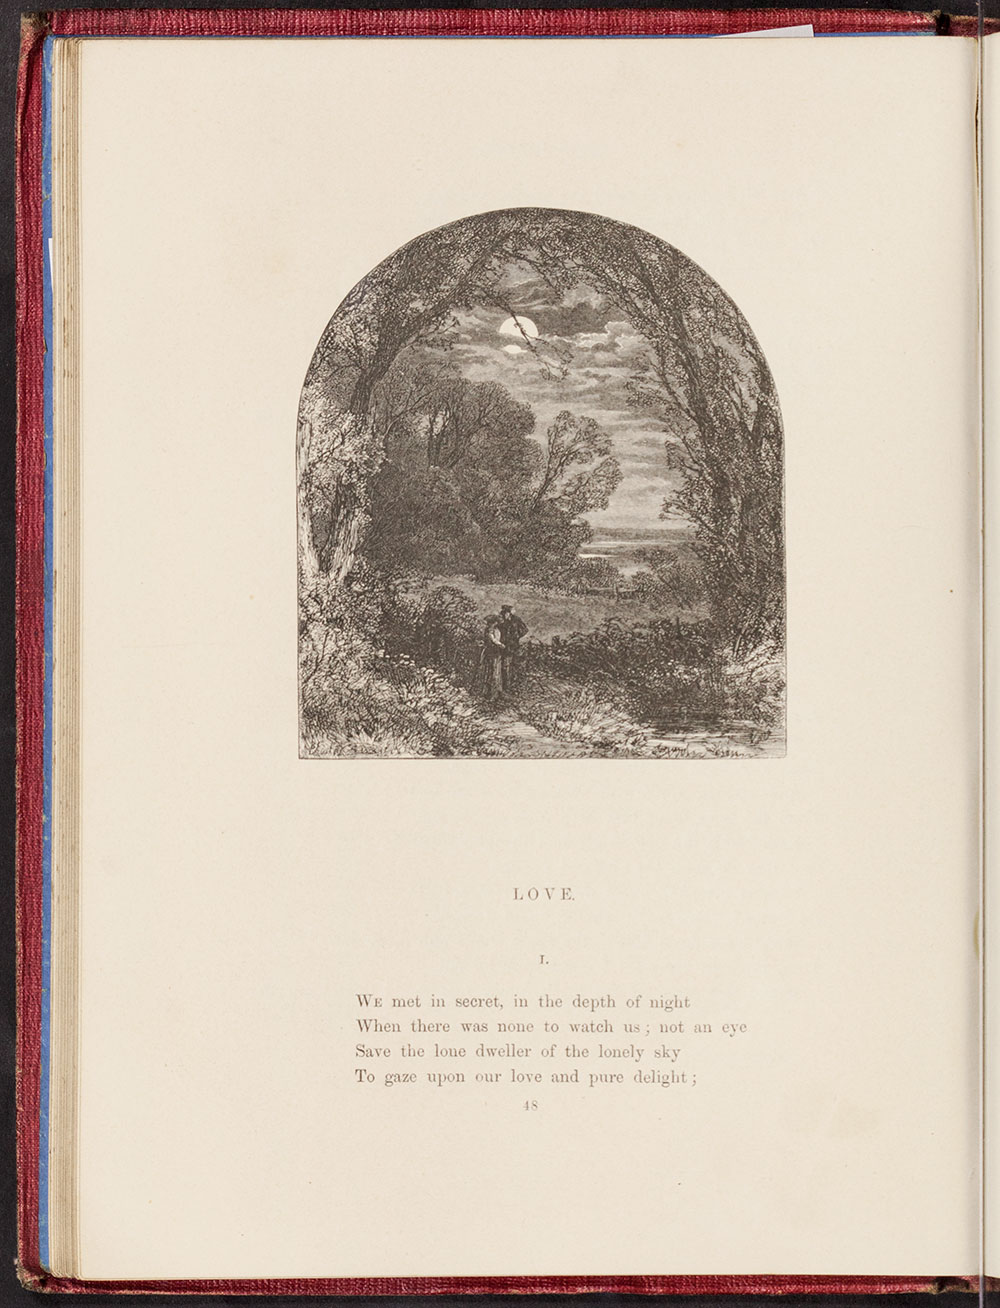 Myles Birket Foster. <i>The Home Affections Pourtrayed by the Poets.</i> London: George Routledge & Co., 1858.